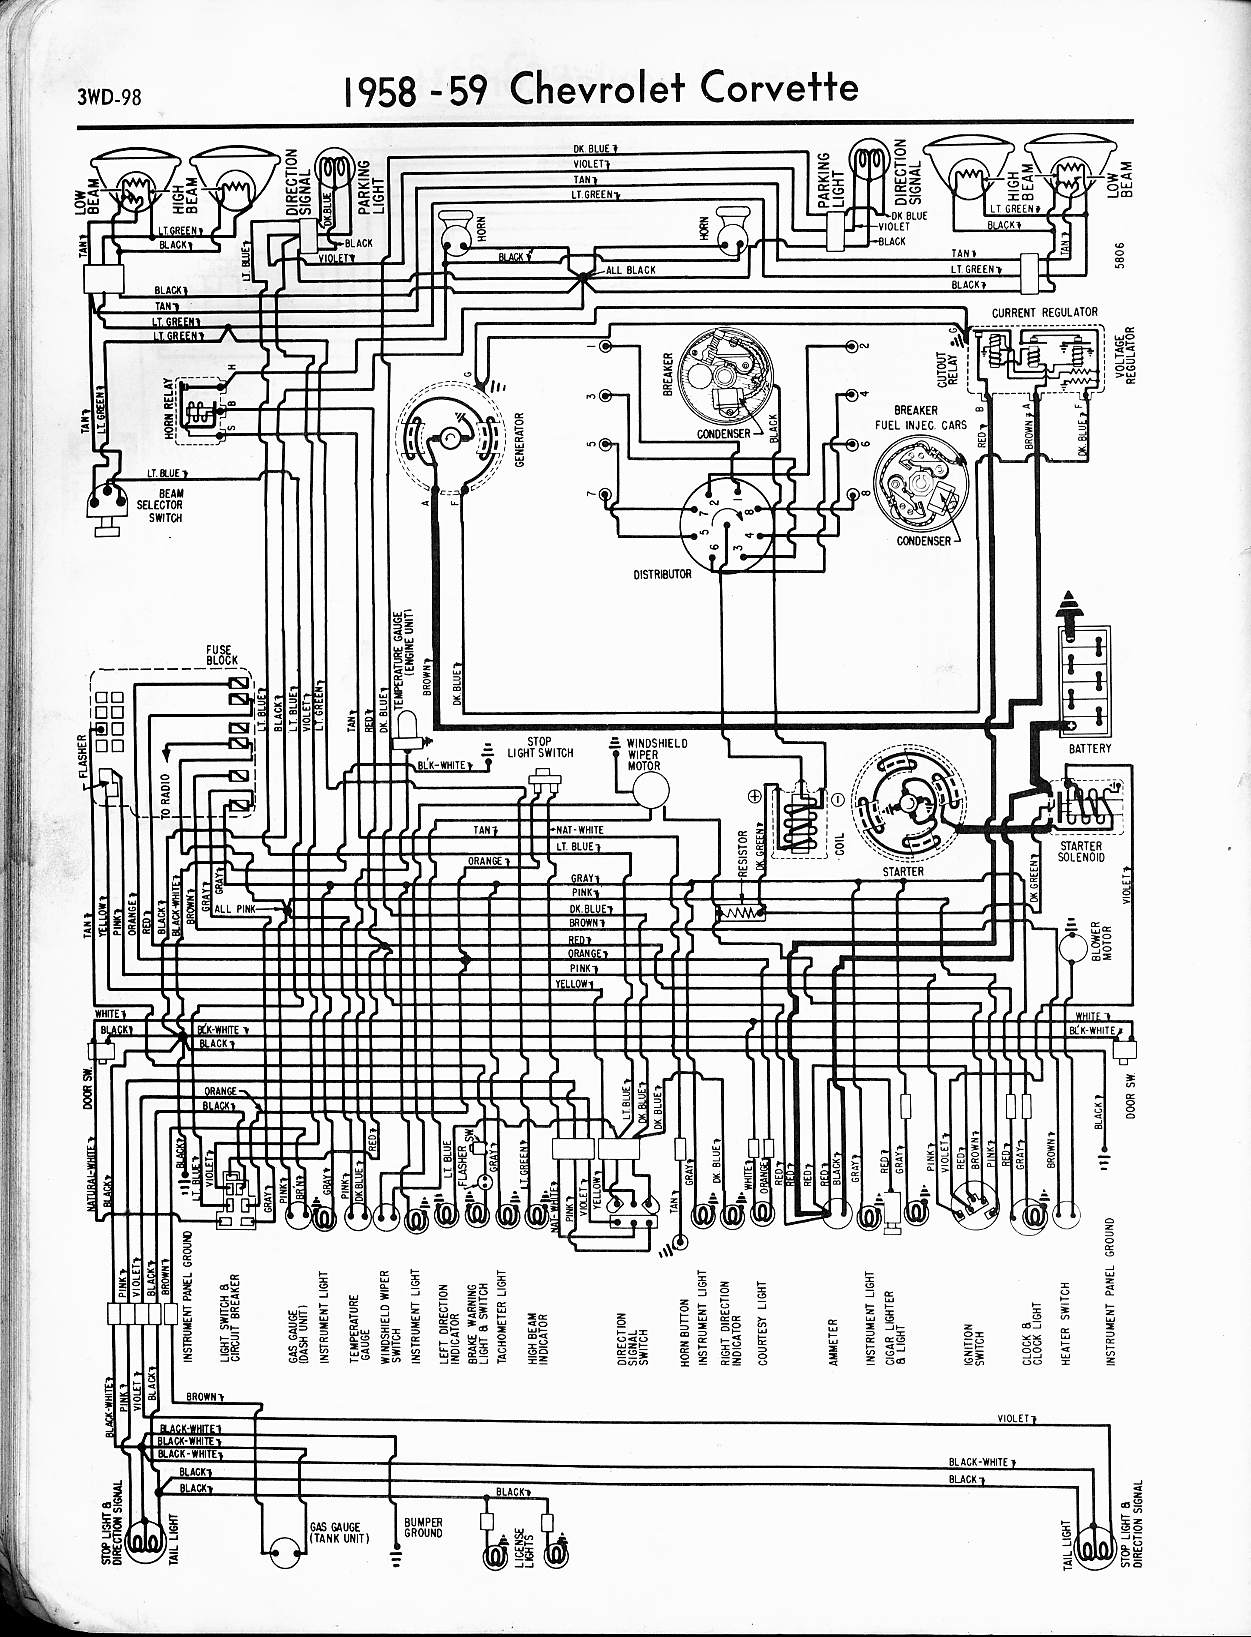 hight resolution of 1958 impala wiring diagram wiring diagram todays 1997 corvette wiring diagram 1958 corvette wiring diagram